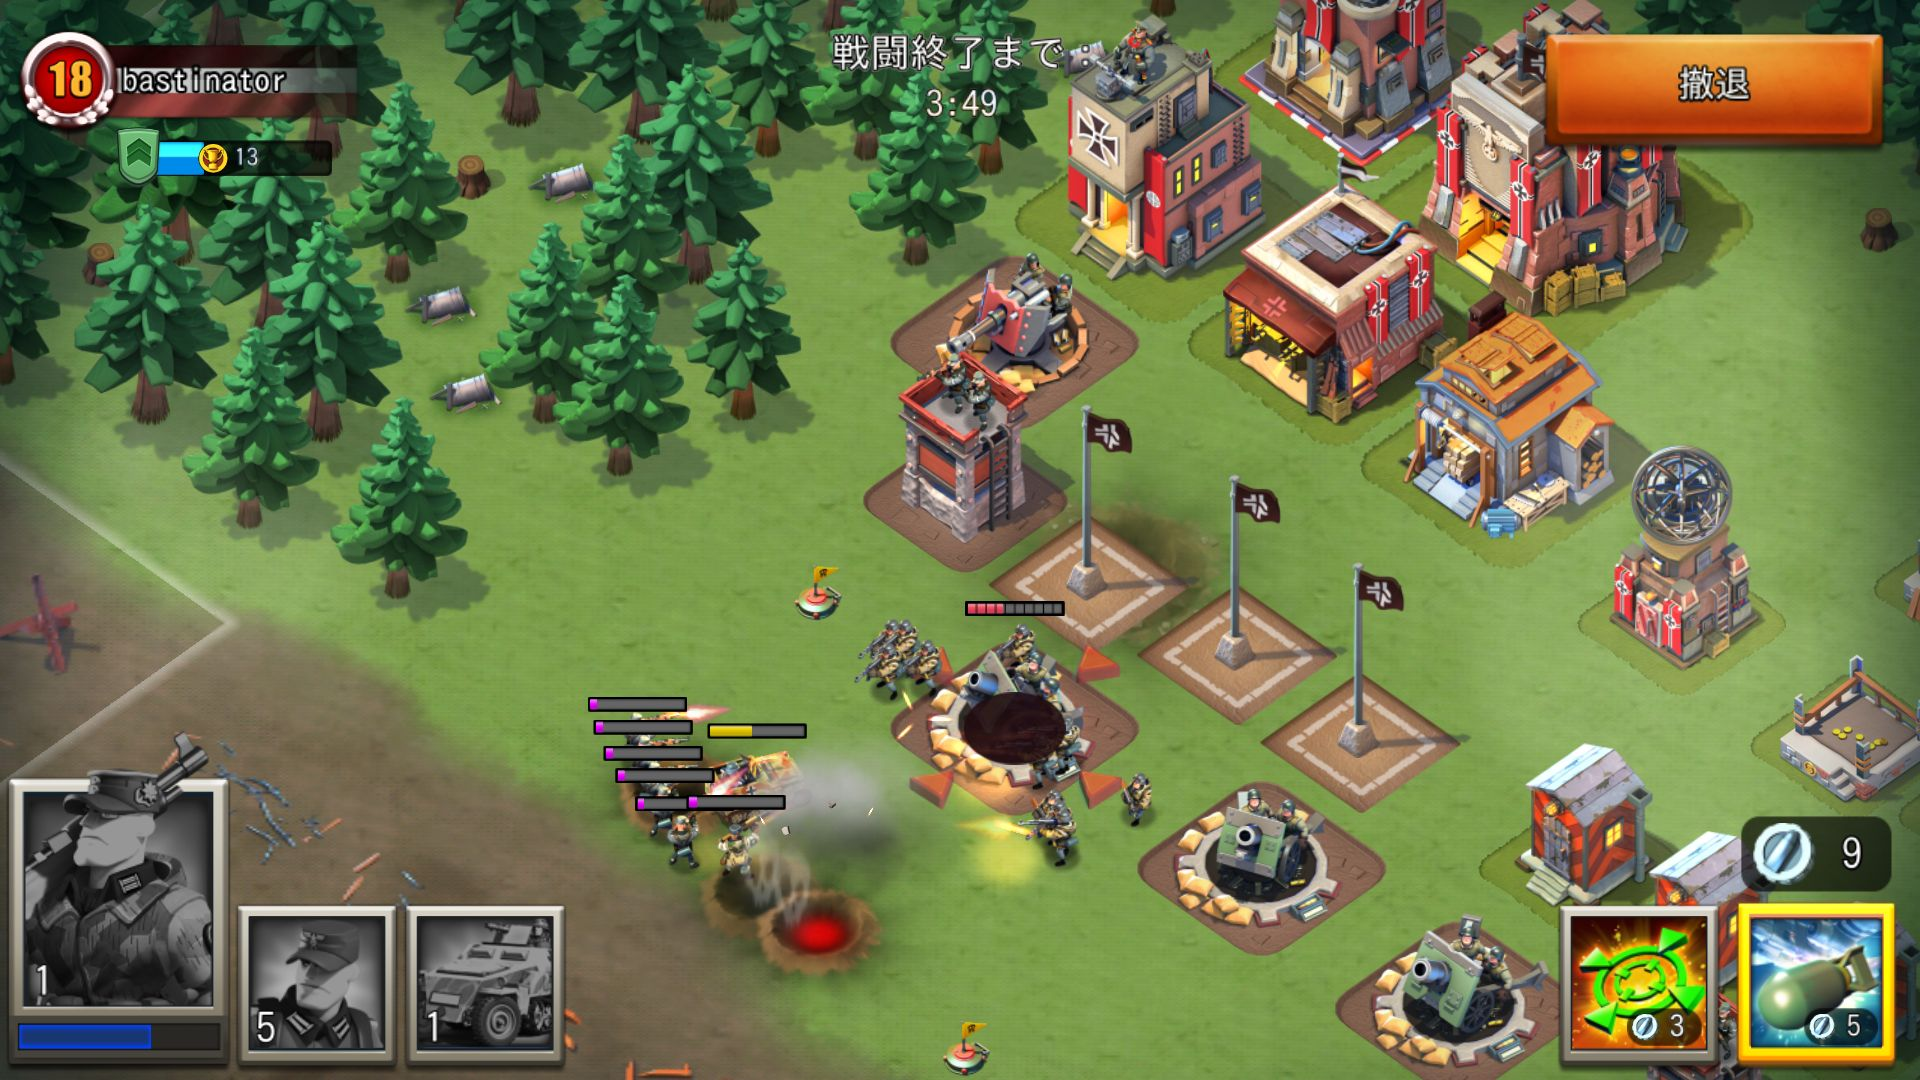 androidアプリ StormFront 1944攻略スクリーンショット5